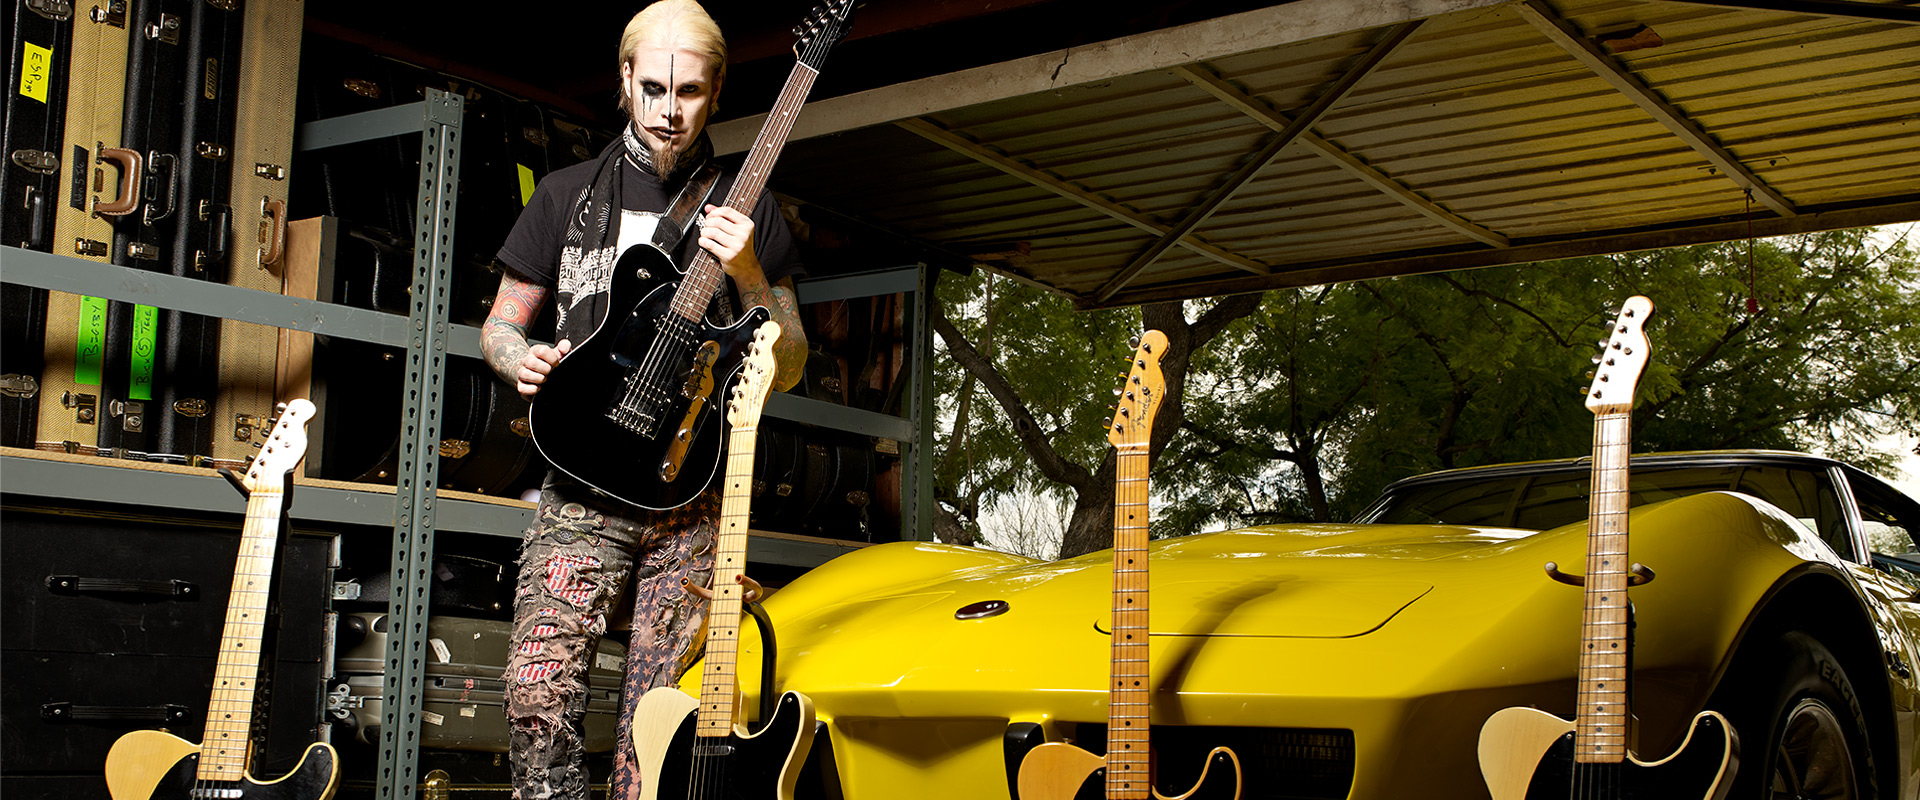 hight resolution of john 5 for dimarzio